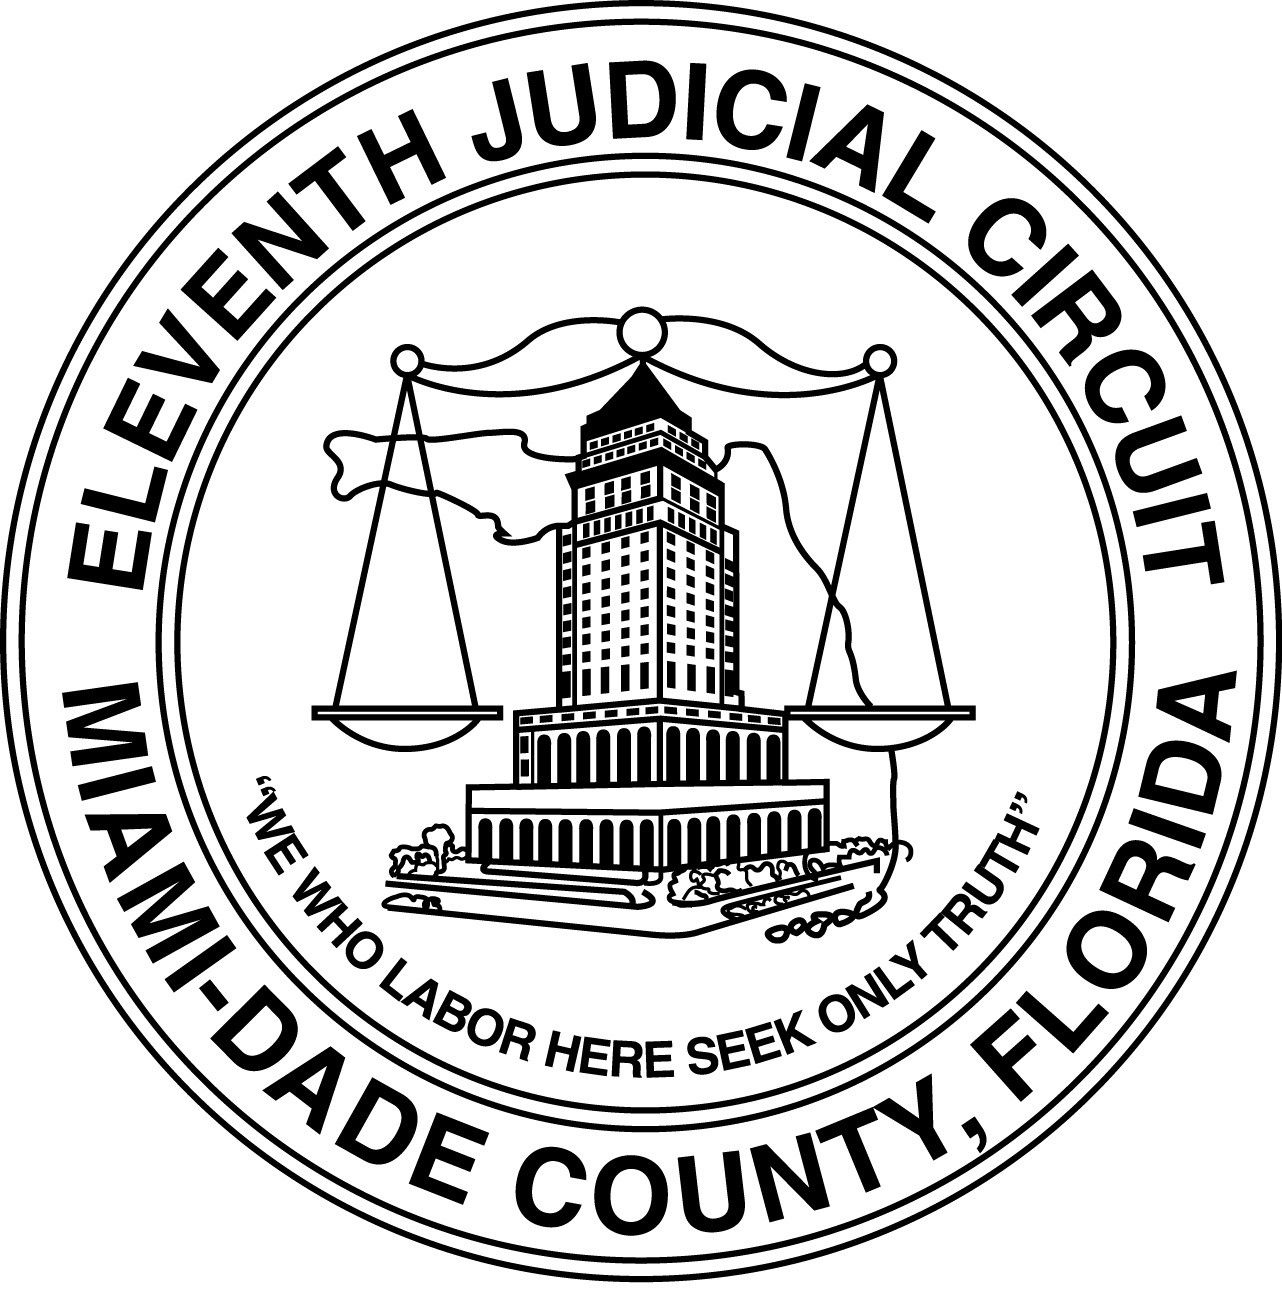 The Eleventh Judicial Circuit seeks a Chief Information